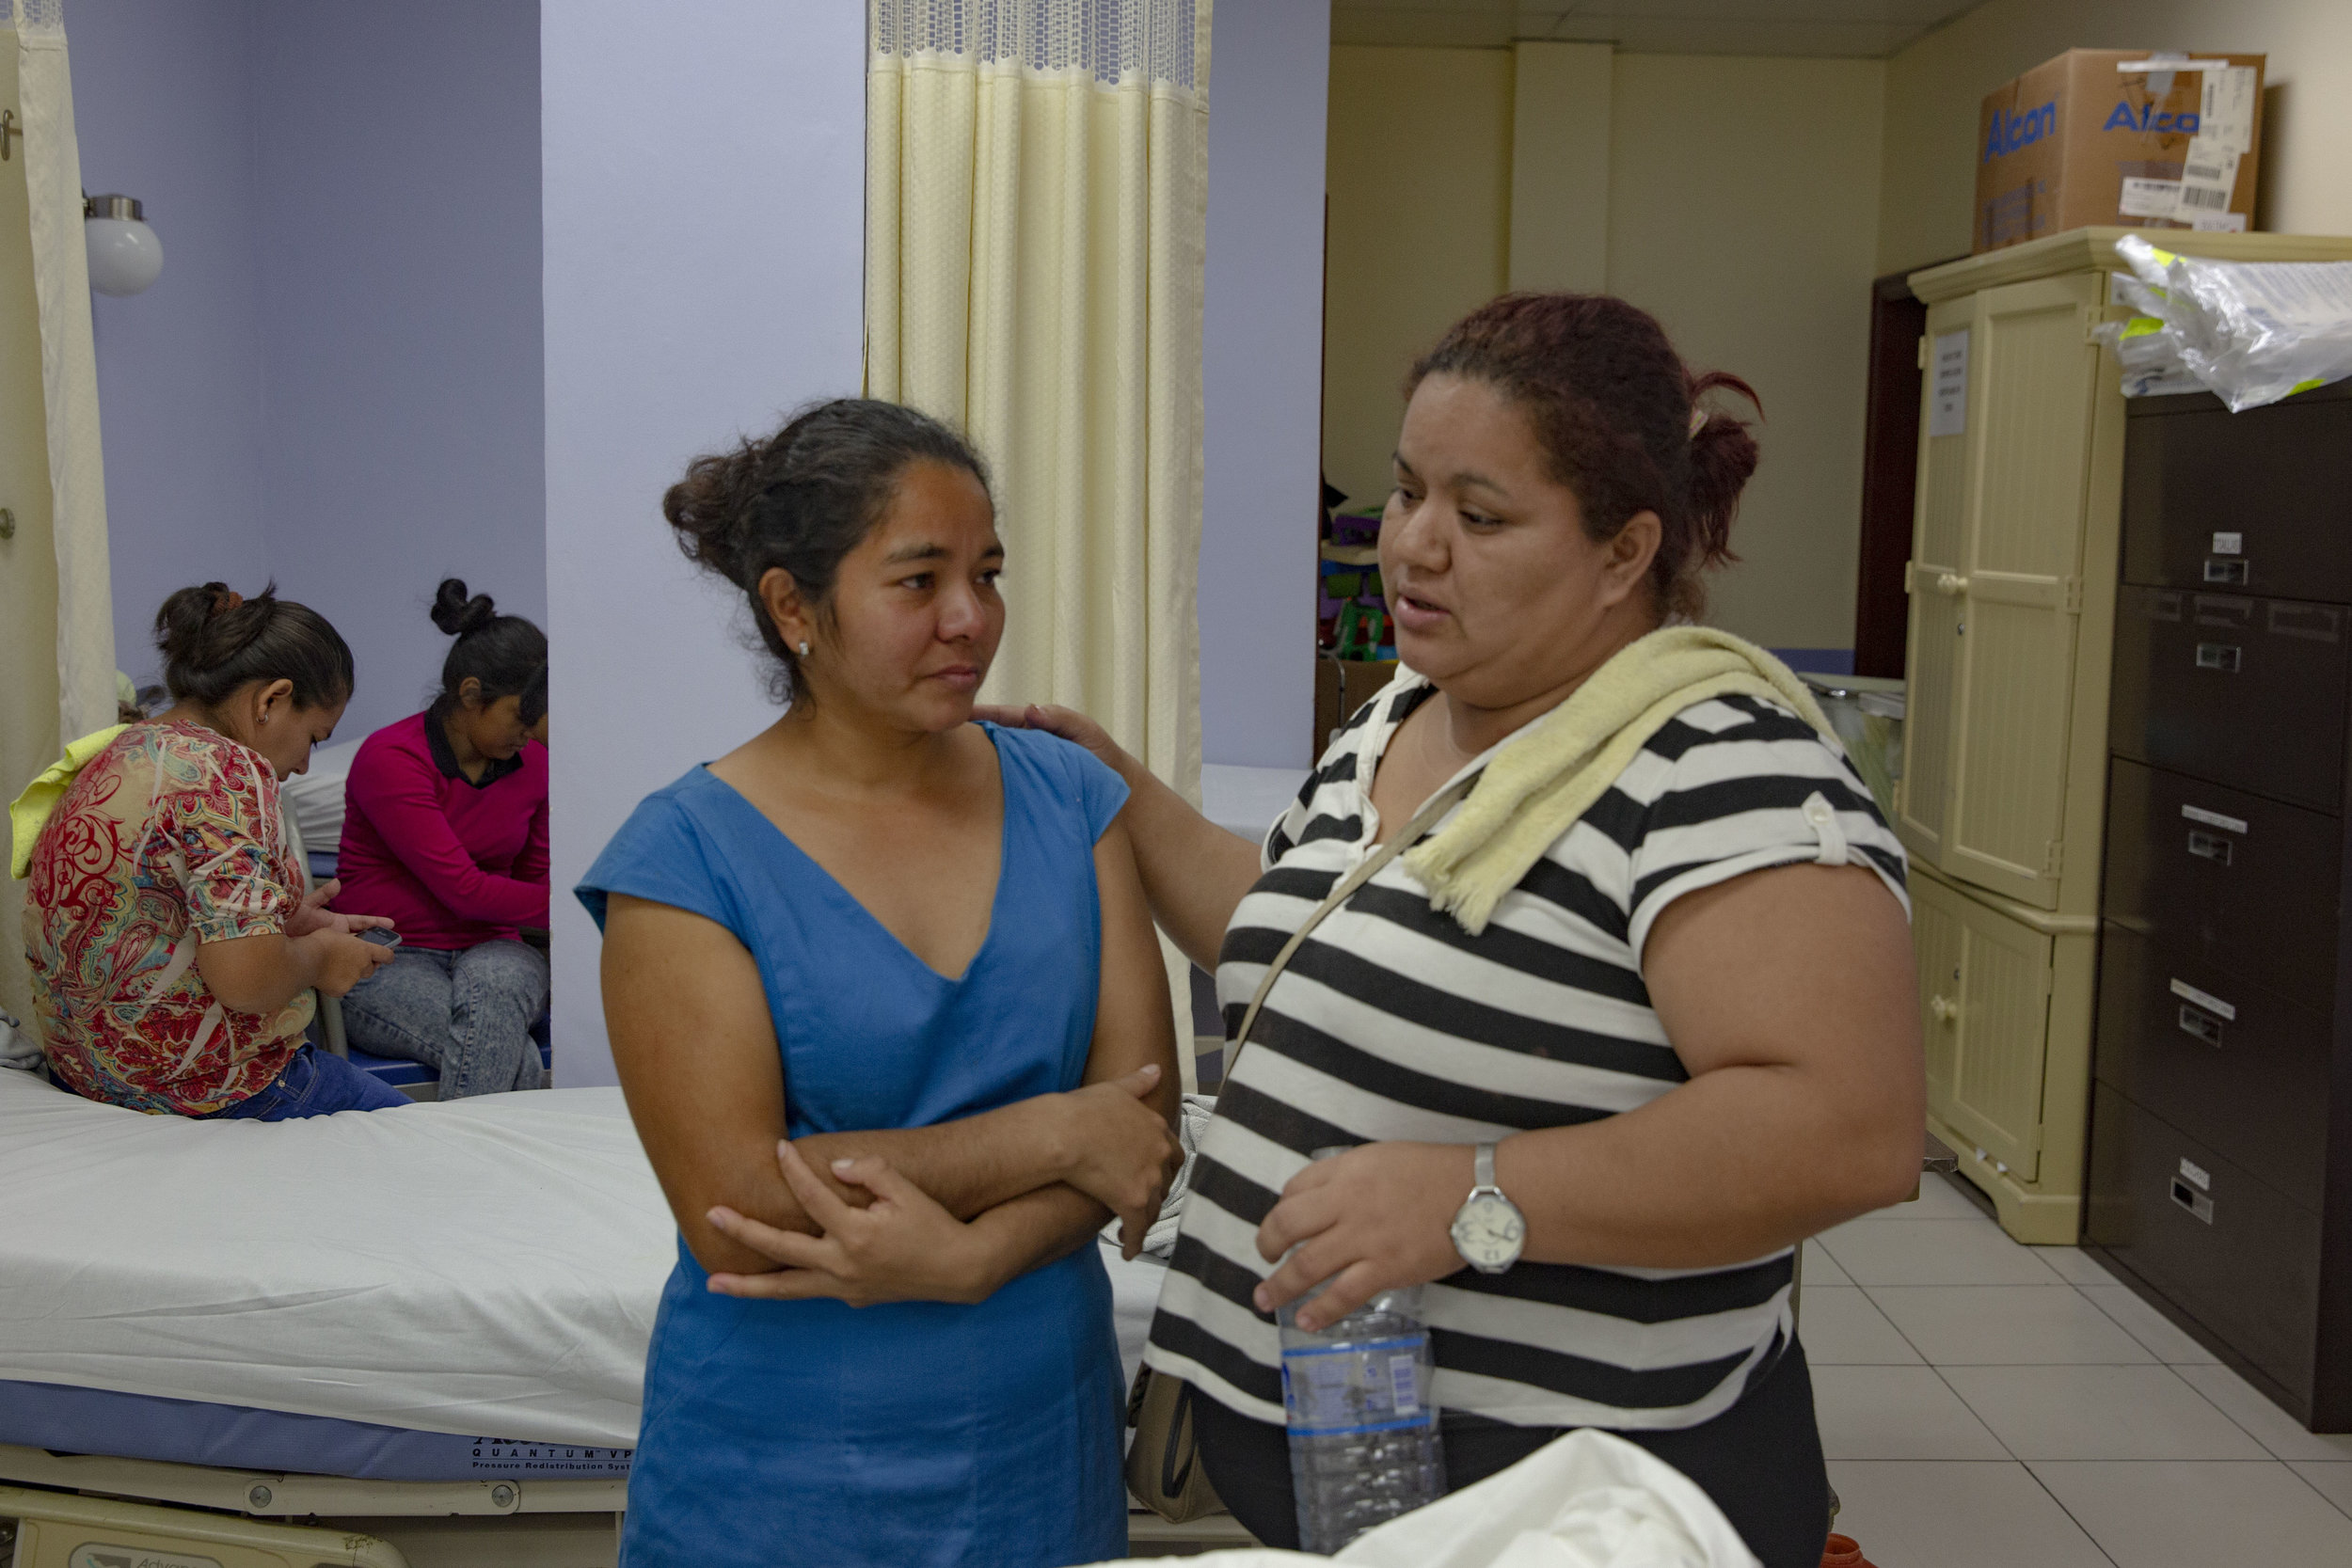 """The mother of Franklin Misael Vasquez Lopez, 17, here at his bedside at the Ruth Paz hospital in San Pedro Sula, Honduras. Franklin broke his femur when he was on a motorbike with his friend. """"I brought him to the public hospital, they just gave him a lot of painkillers and that's it, they didn't really treated him for 21 days. When his skin started to become yellowish and his leg extremely swollen then I brought him here at the Ruth Paz hospital""""."""